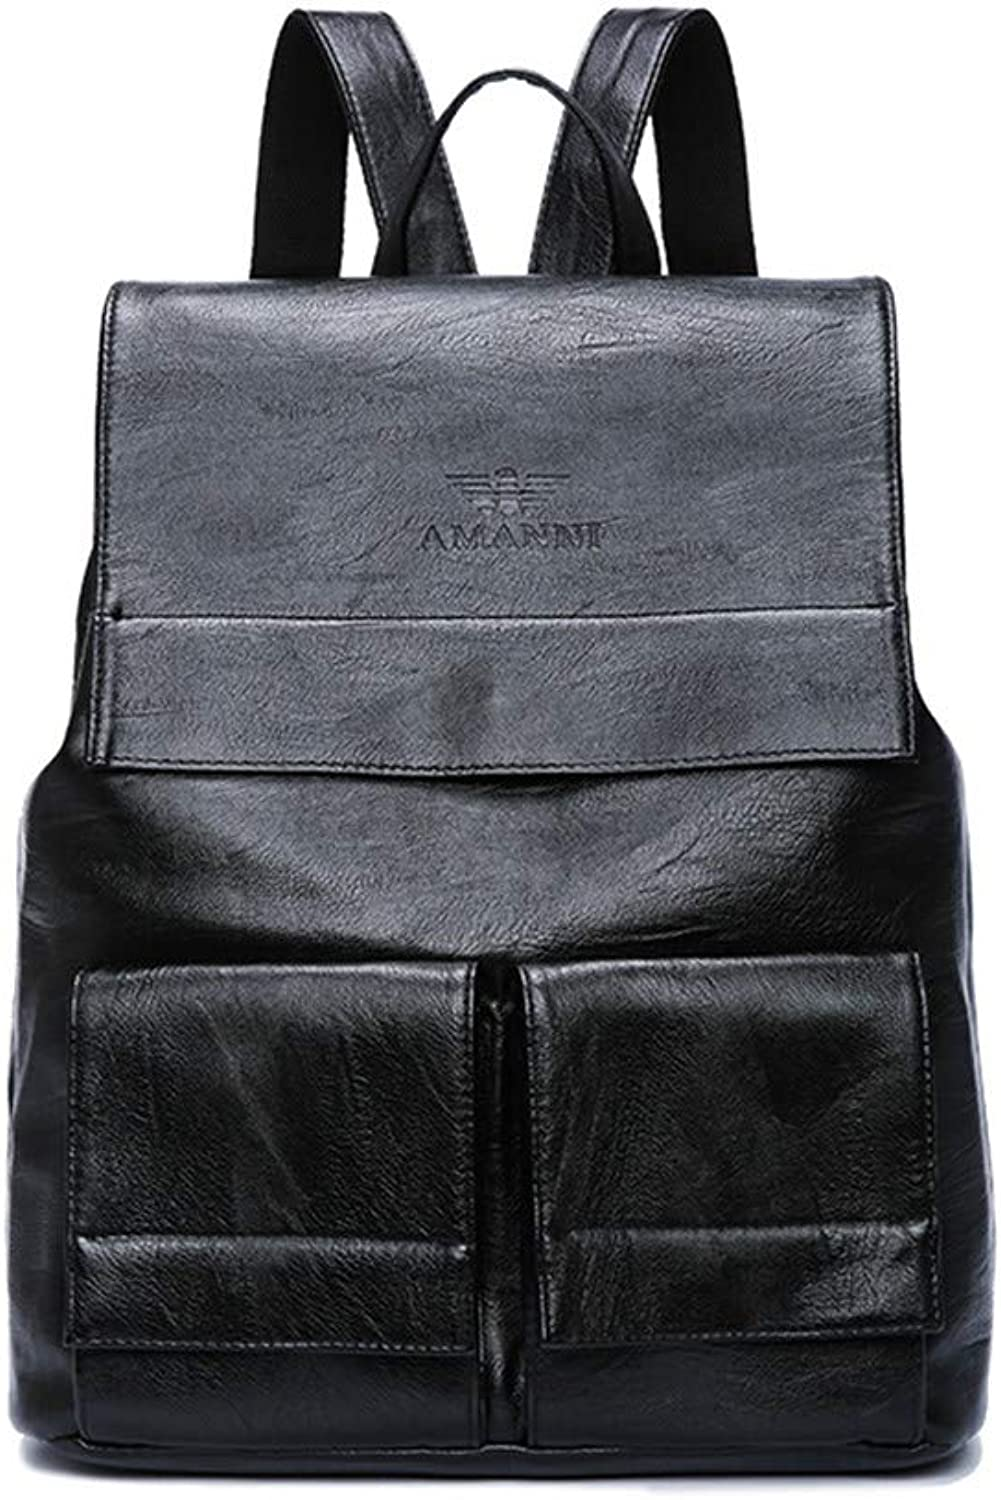 Casual Daypacks, Backpack Ladies Leather Backpack Casual AntiTheft LargeCapacity Travel Bag Retro Student Bag Computer Bag (color   Black)